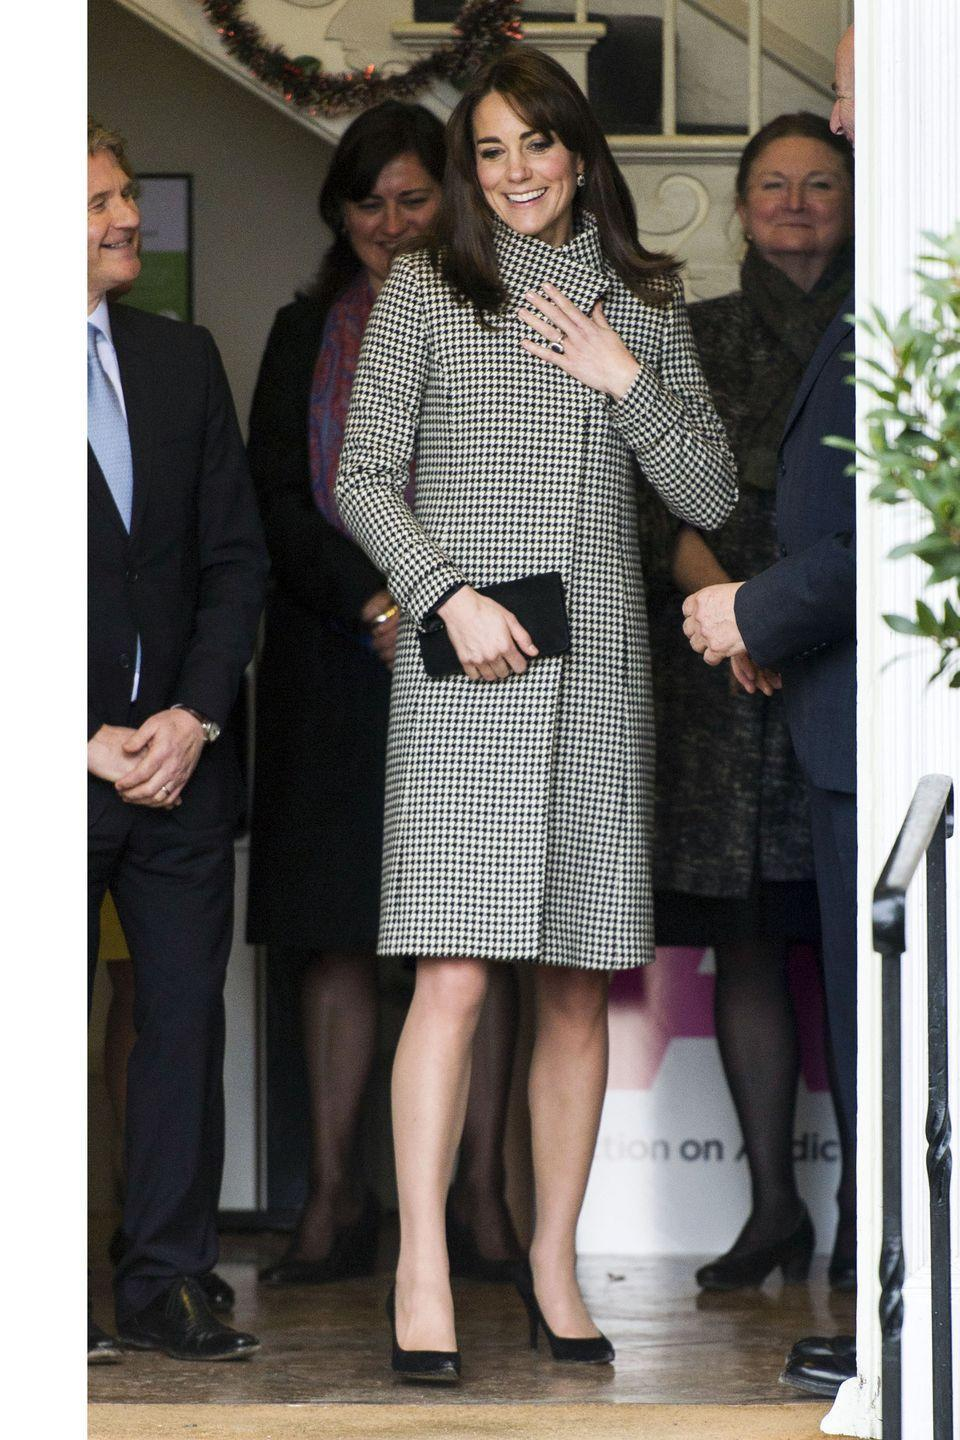 <p>The royal wears a black and white houndstooth Reiss coat, complete with black accessories. </p>